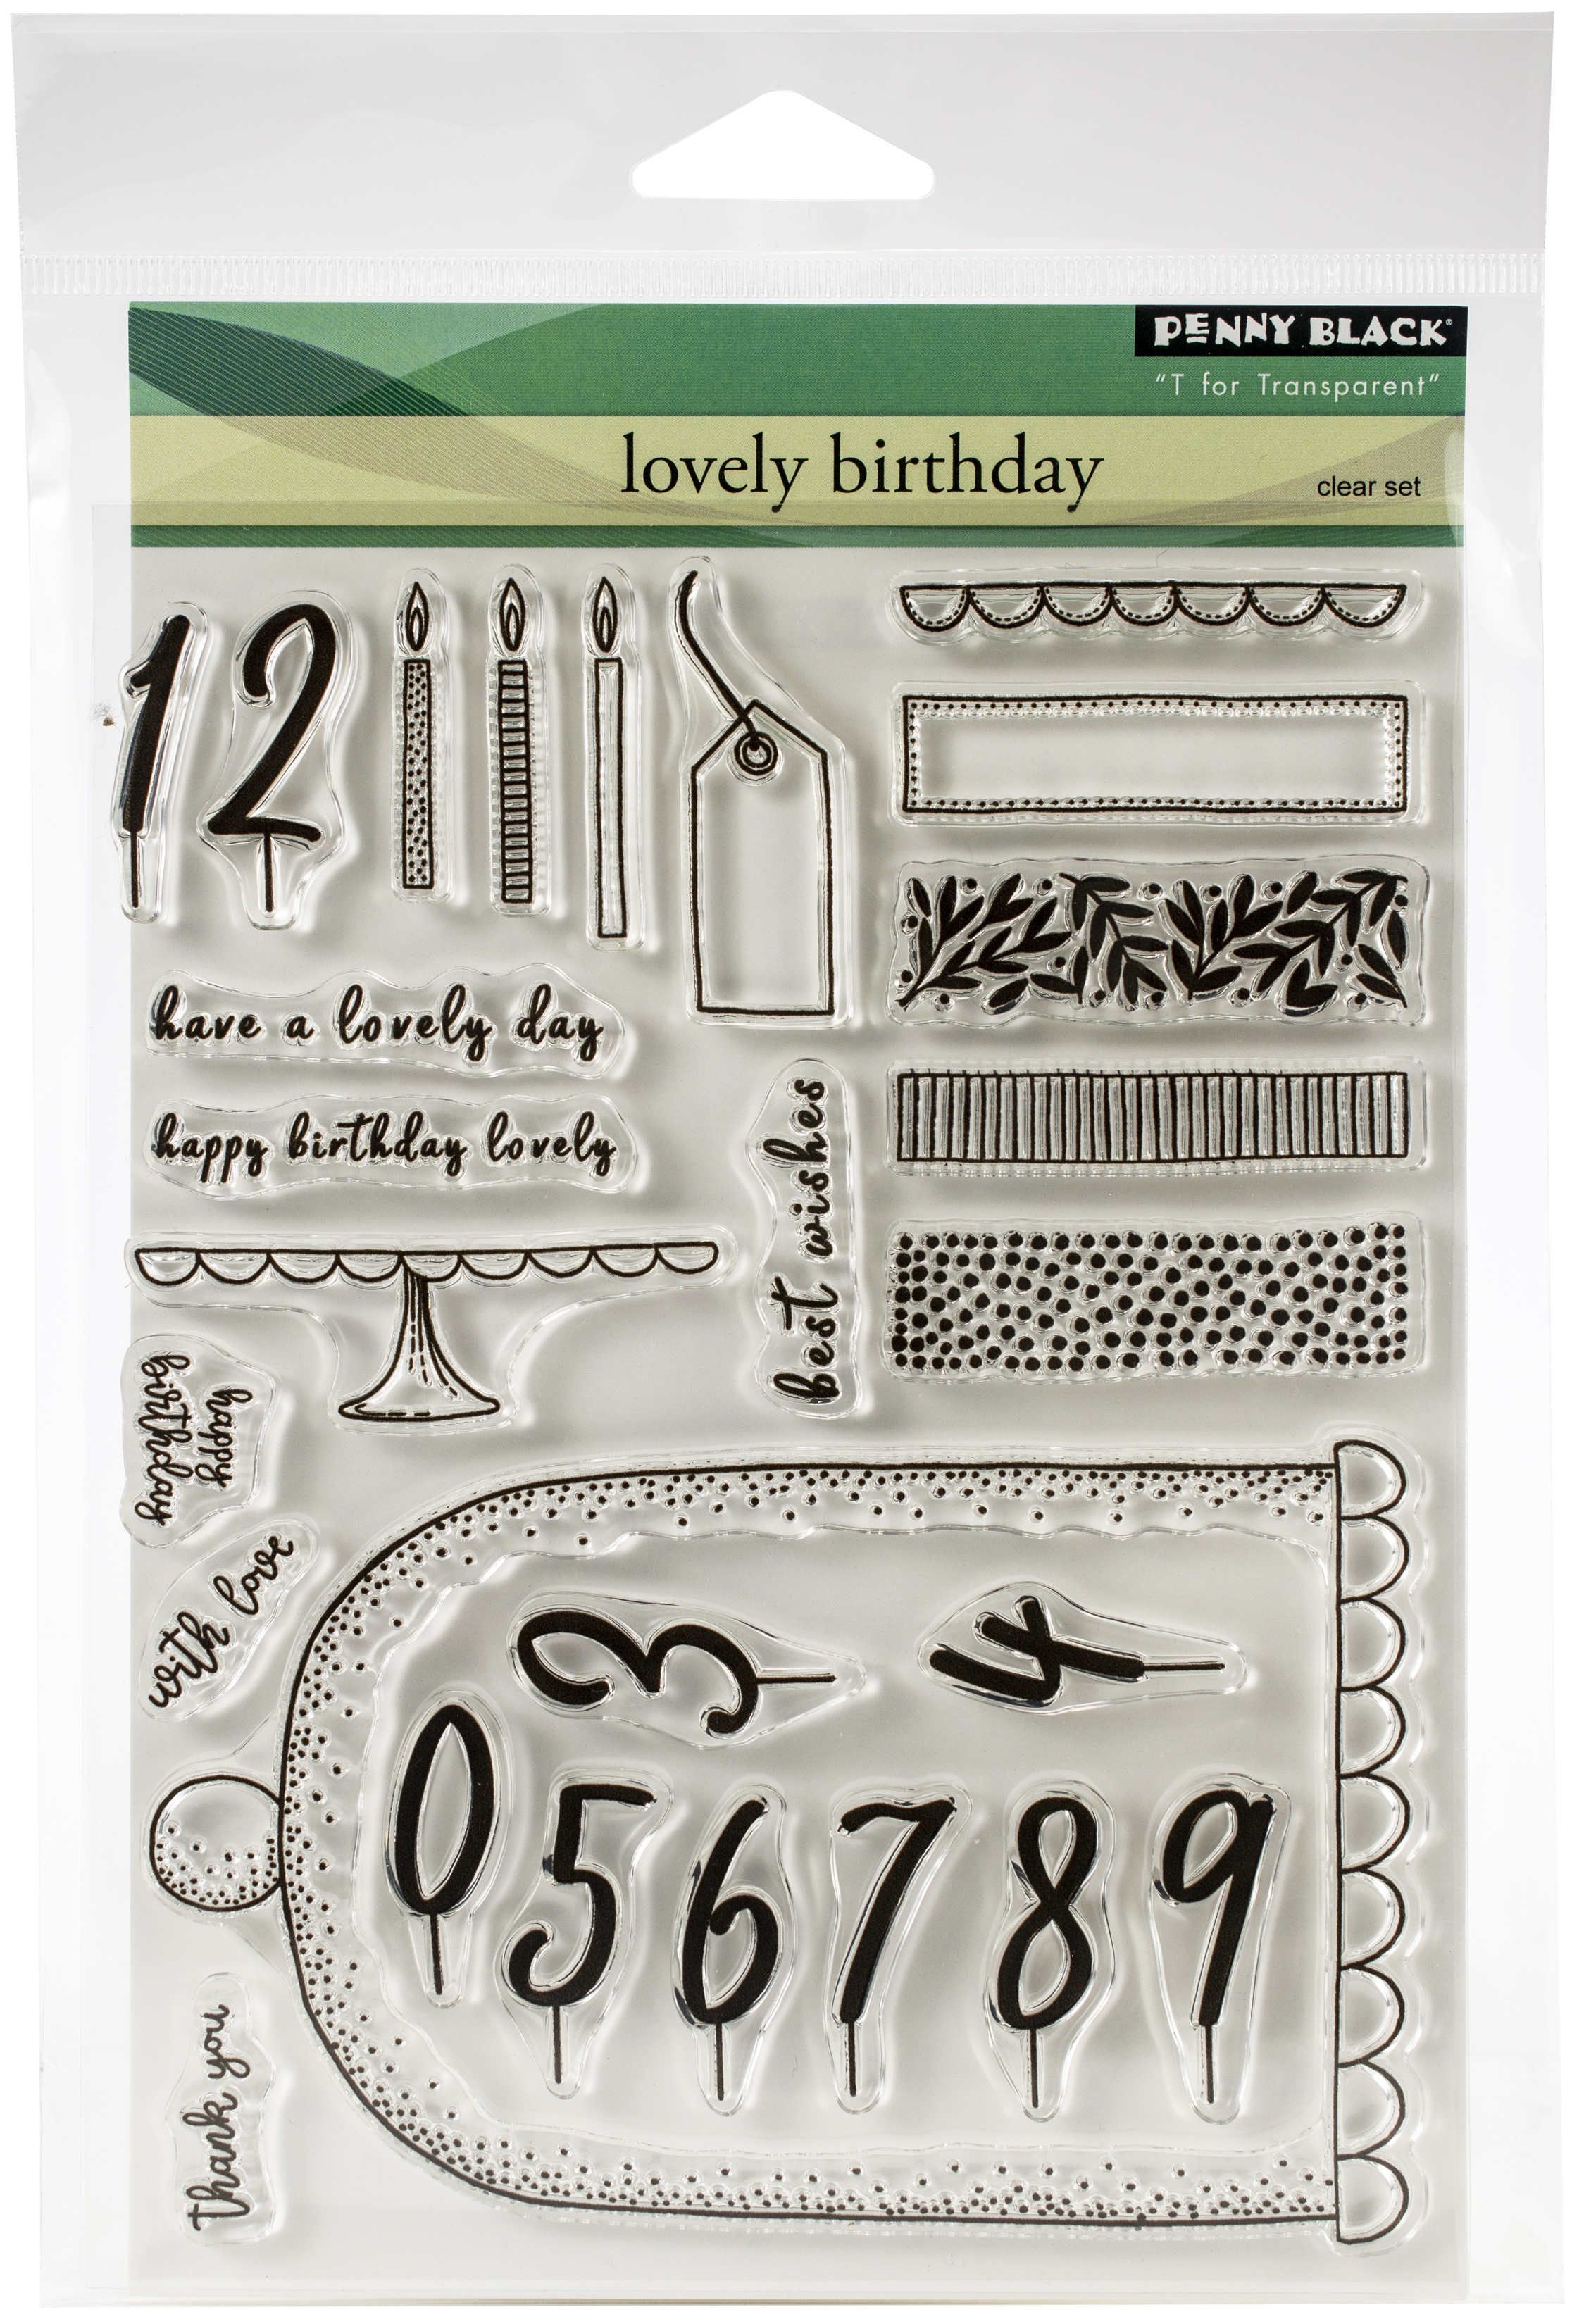 Penny Black Clear Stamps-Lovely Birthday 5X6.5